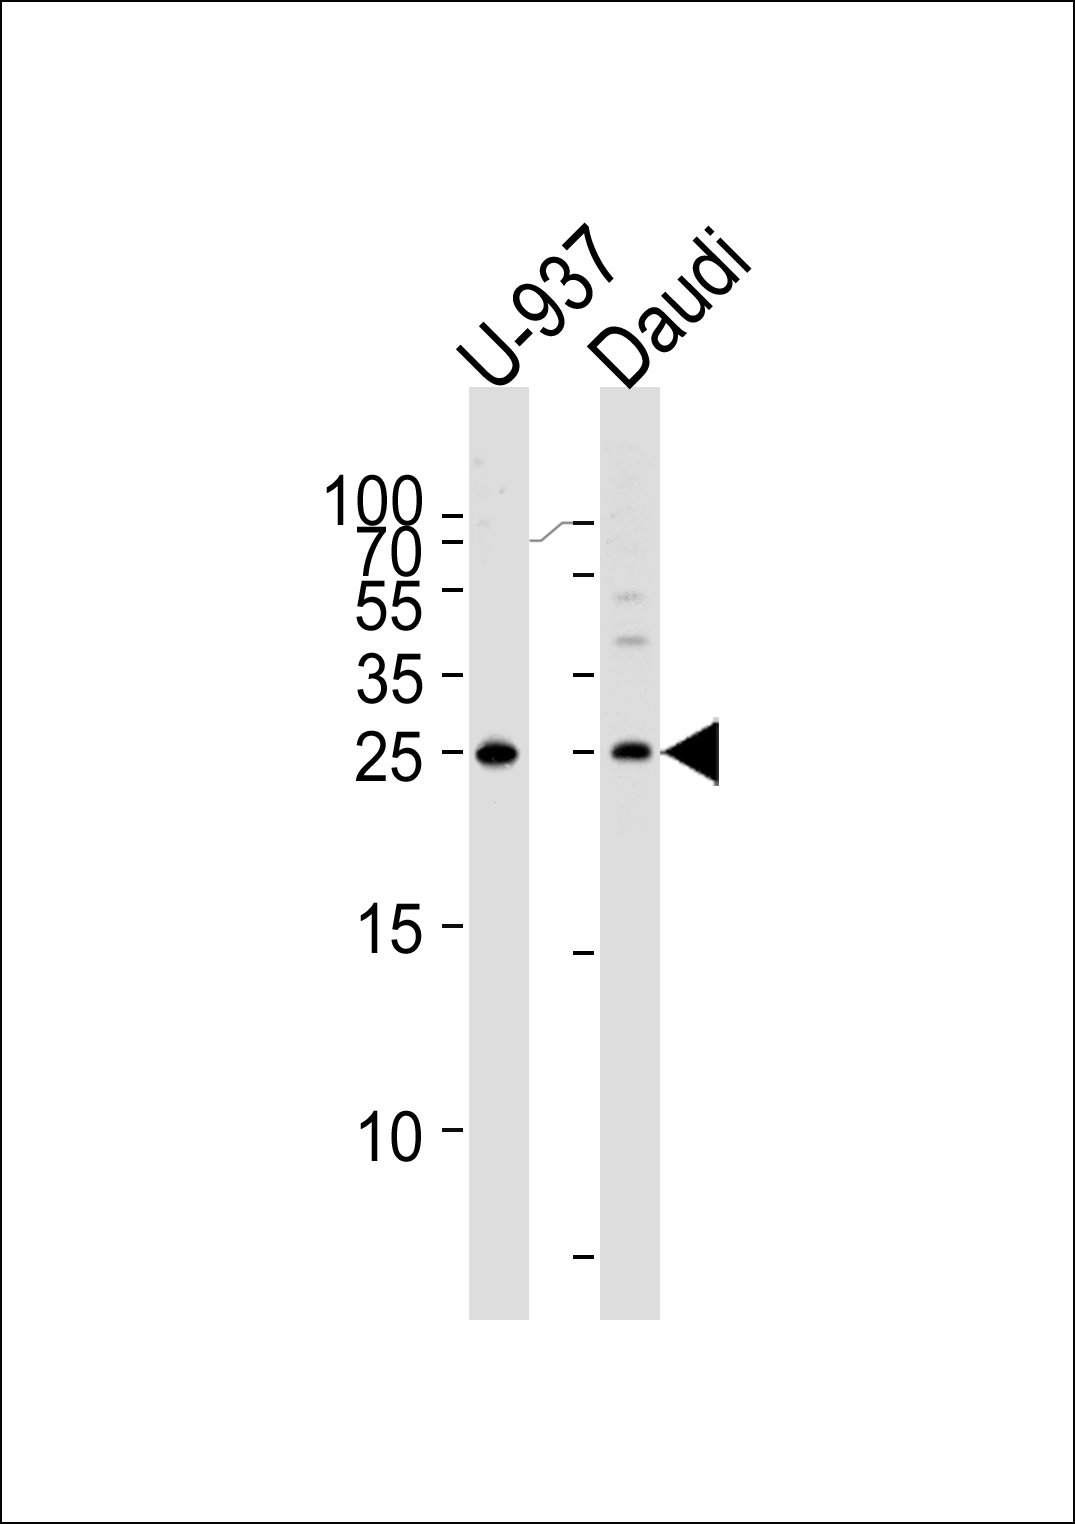 Western blot of lysates from U-937, Daudi cell line (from left to right), using CD37 Antibody. Antibody was diluted at 1:1000 at each lane. A goat anti-rabbit IgG H&L (HRP) at 1:5000 dilution was used as the secondary antibody. Lysates at 35ug per lane.